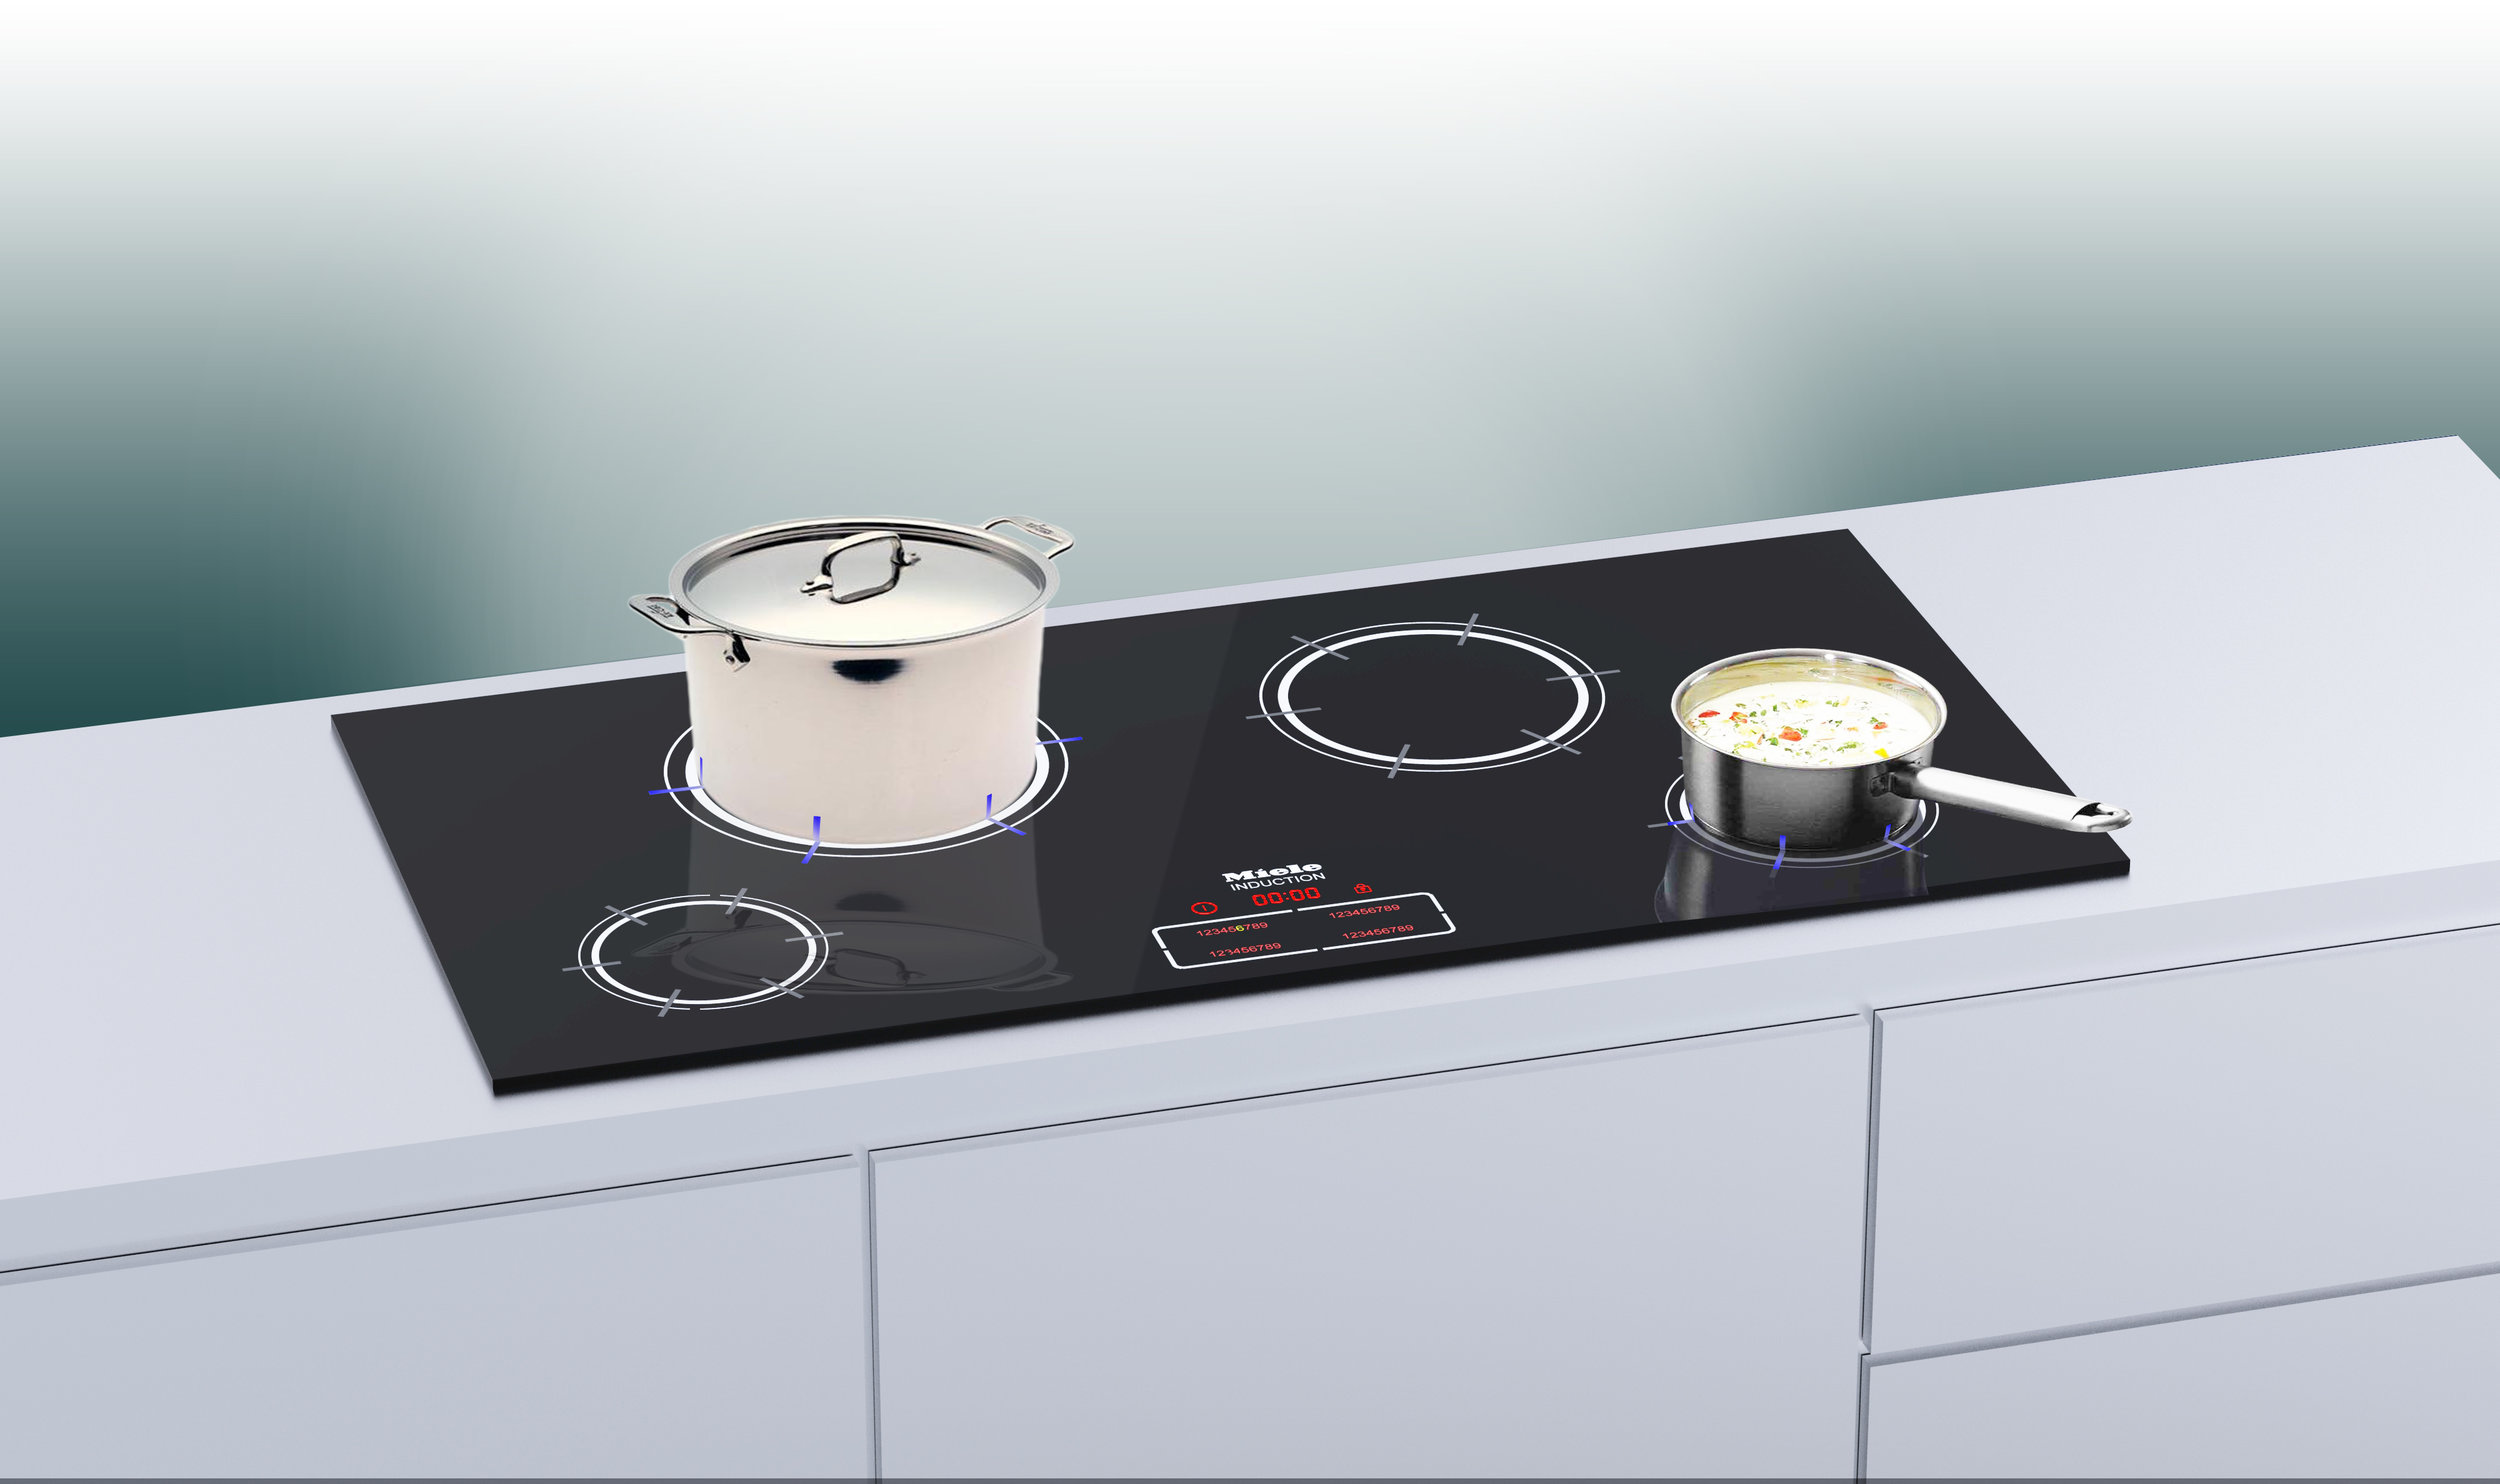 Visual Temperature - LED lights built into an induction hob shine a temperature indicator onto pots when cooking. It is a nod to the traditional gas flame and provides for a more intuitive interaction with temperature.Featured in Wired.